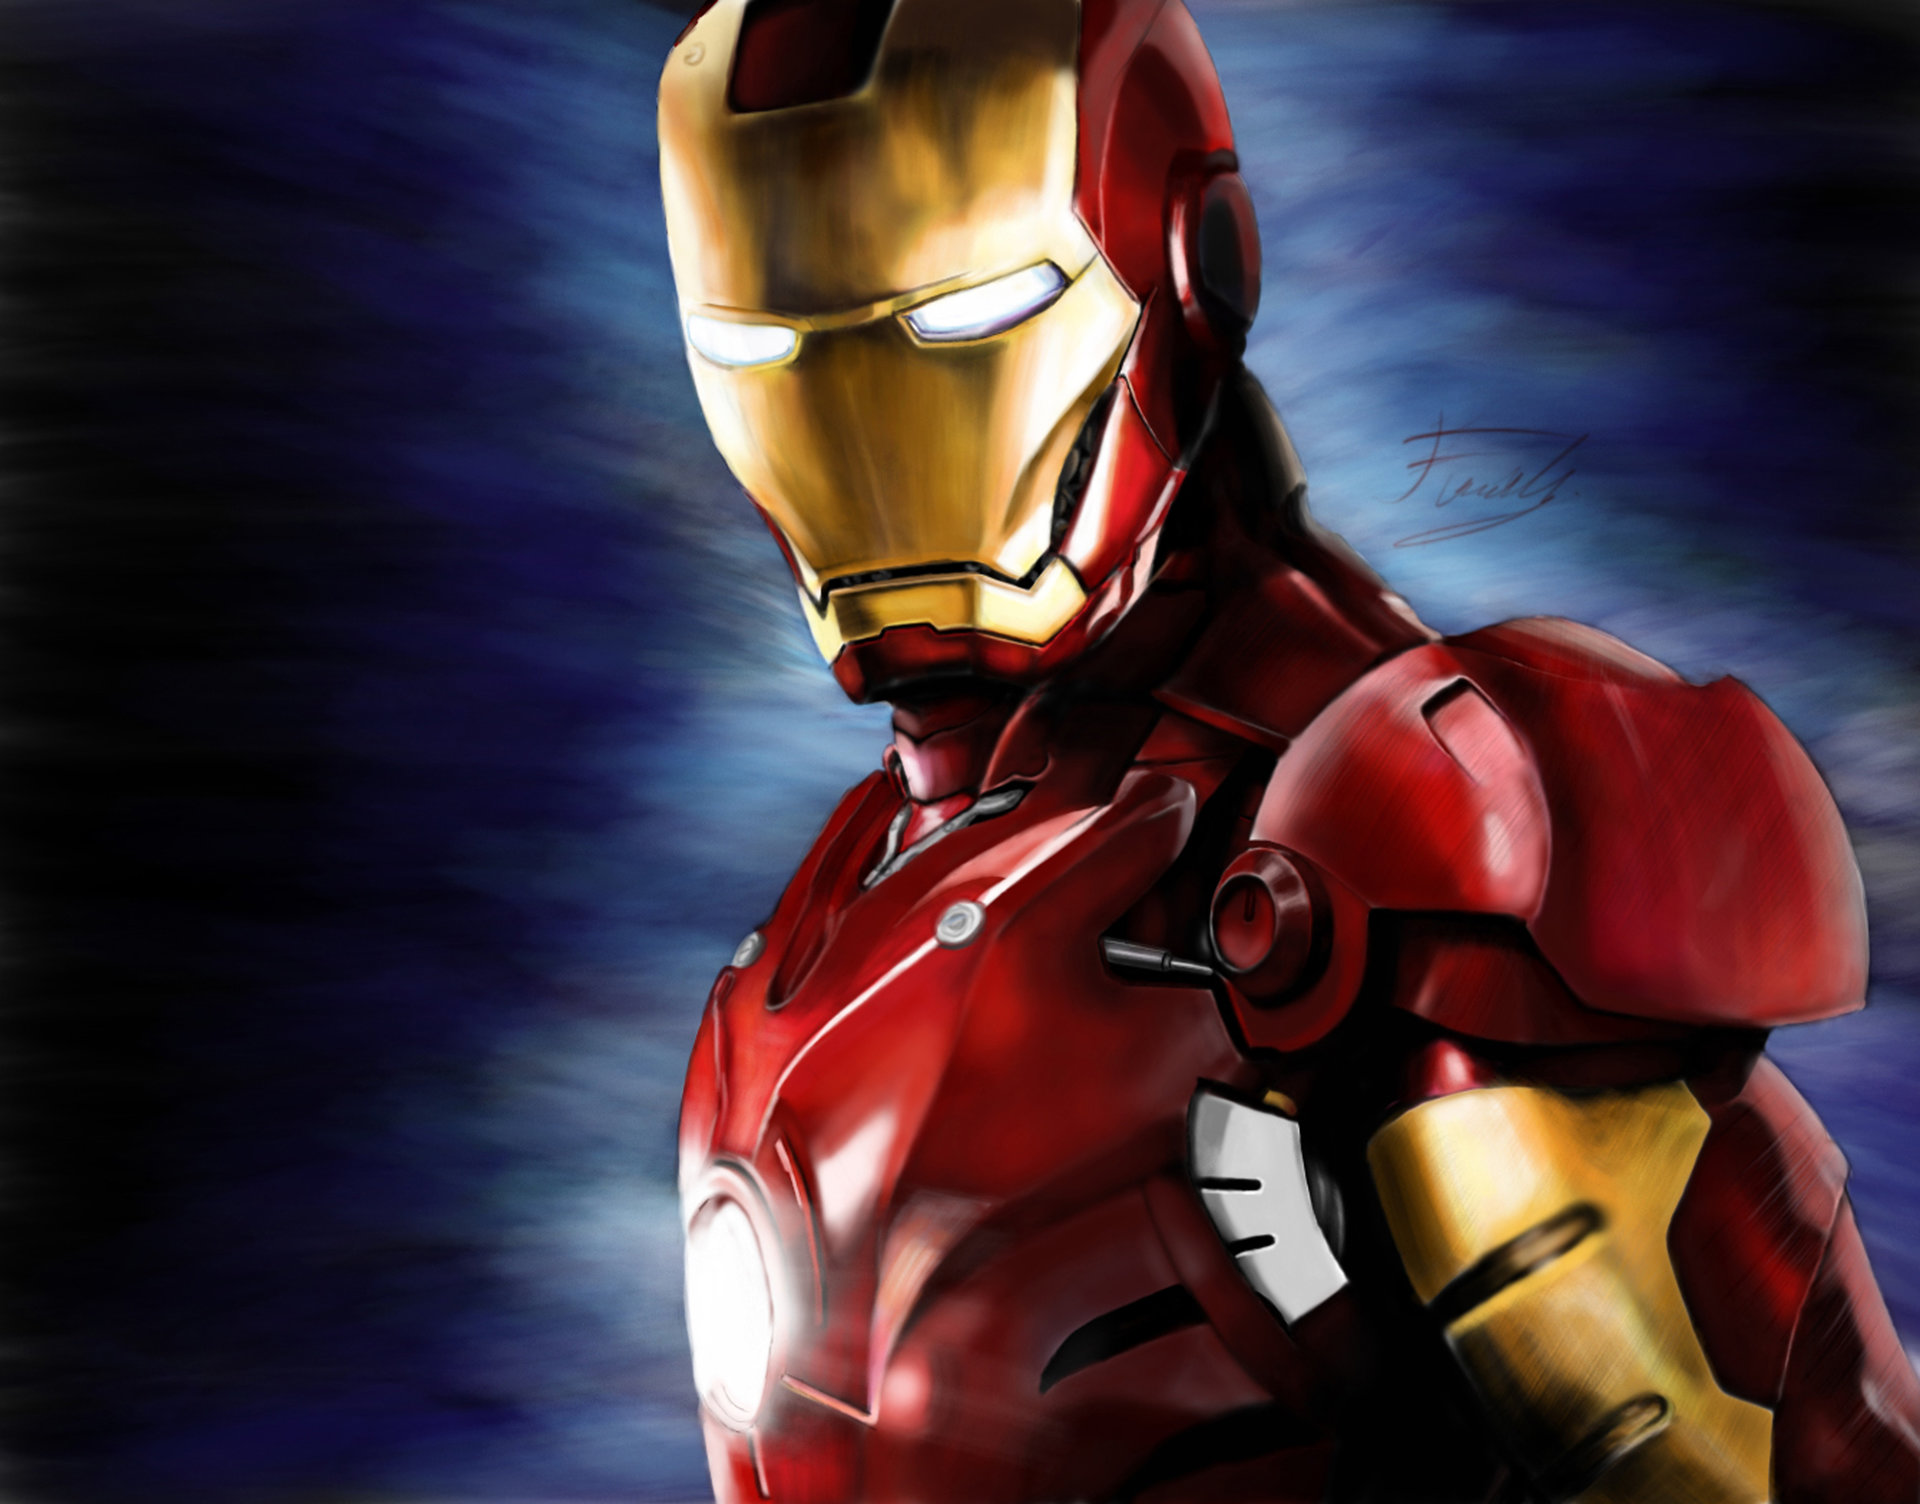 firat guler - iron man fan art